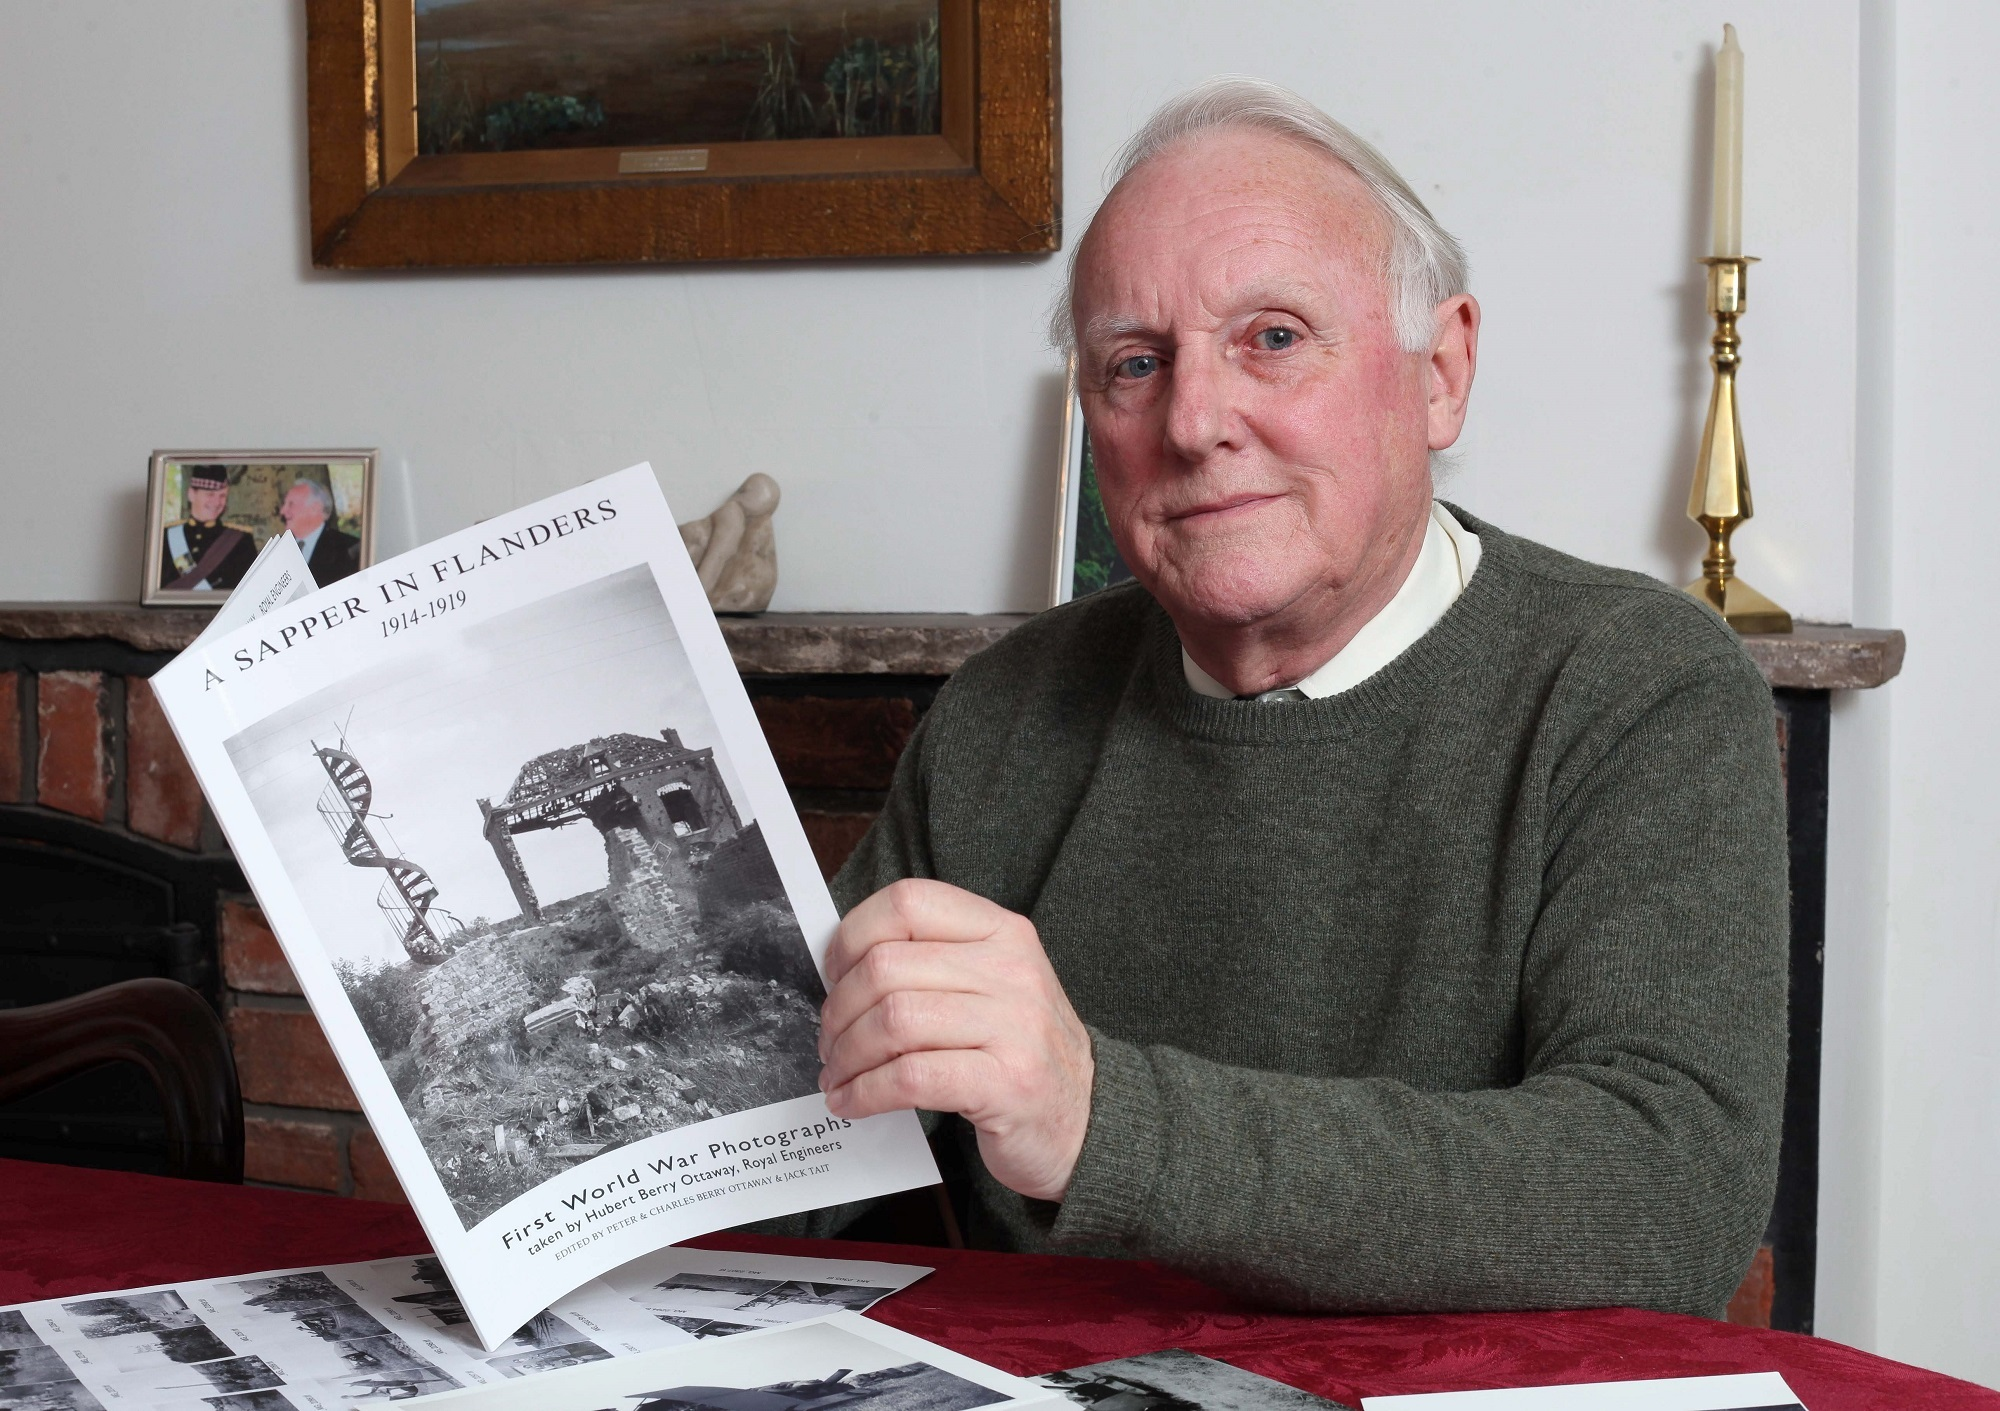 Hereford man discovers rare First World War snaps hidden away in attic